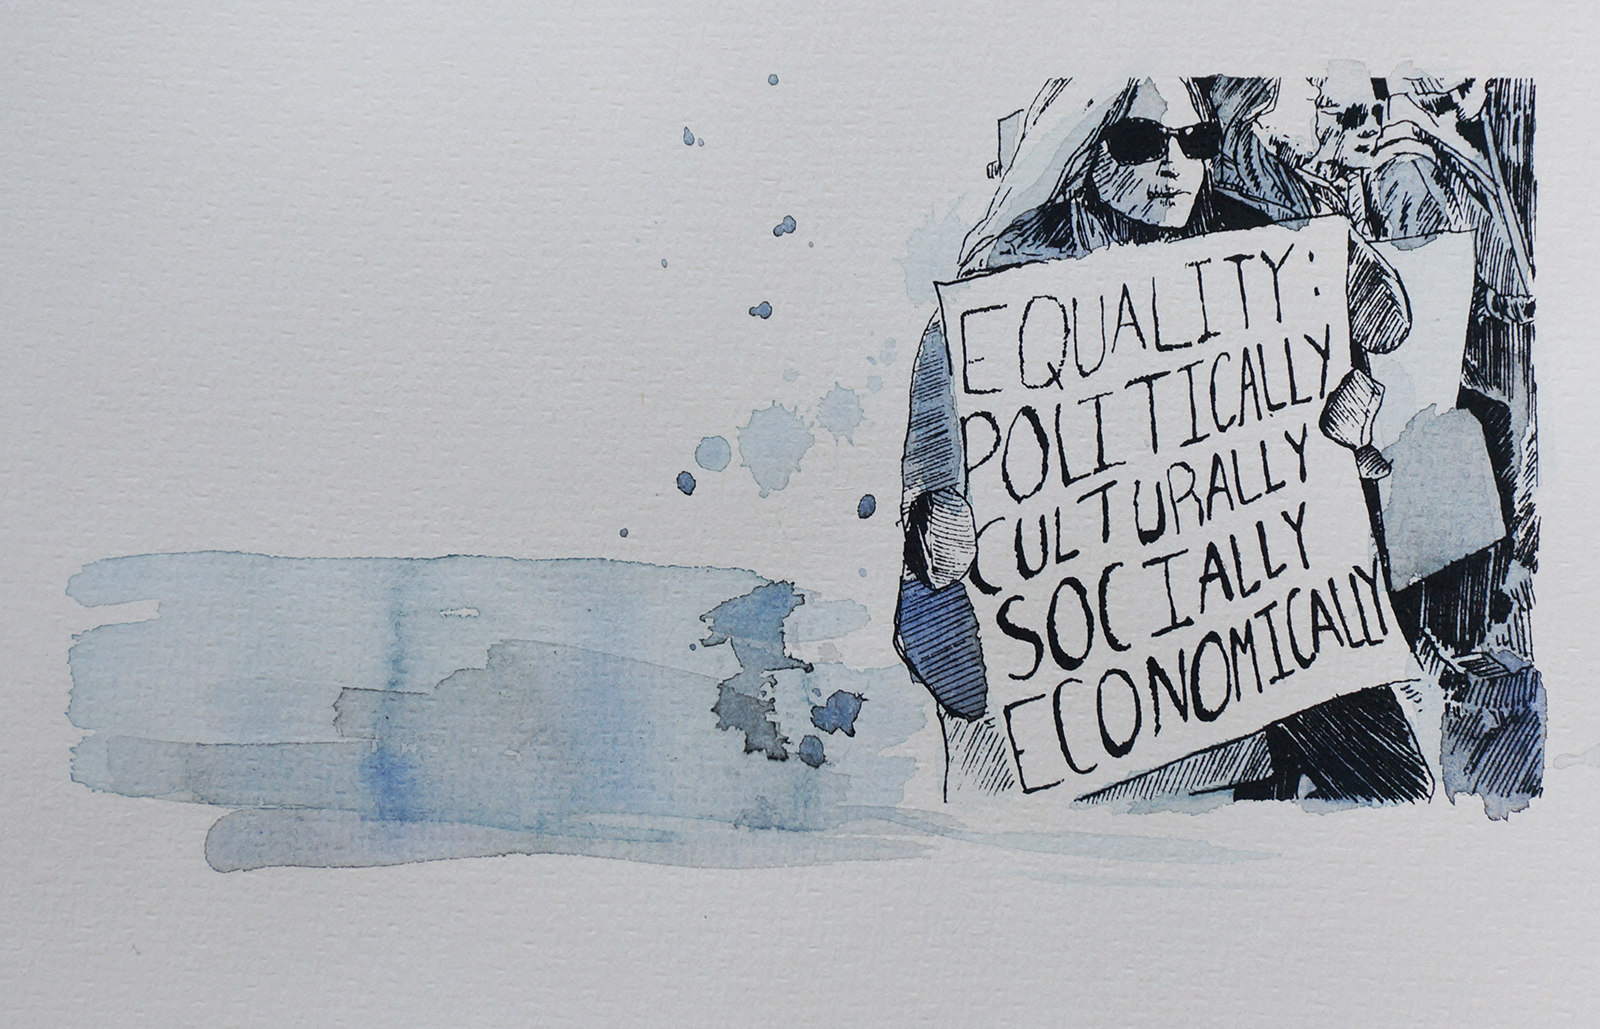 Ape_Bleakney_March Mixed Media - 'Equality (1)', 6.5''x9.5'', Screen Print + Watercolor, 2018 copy.jpg